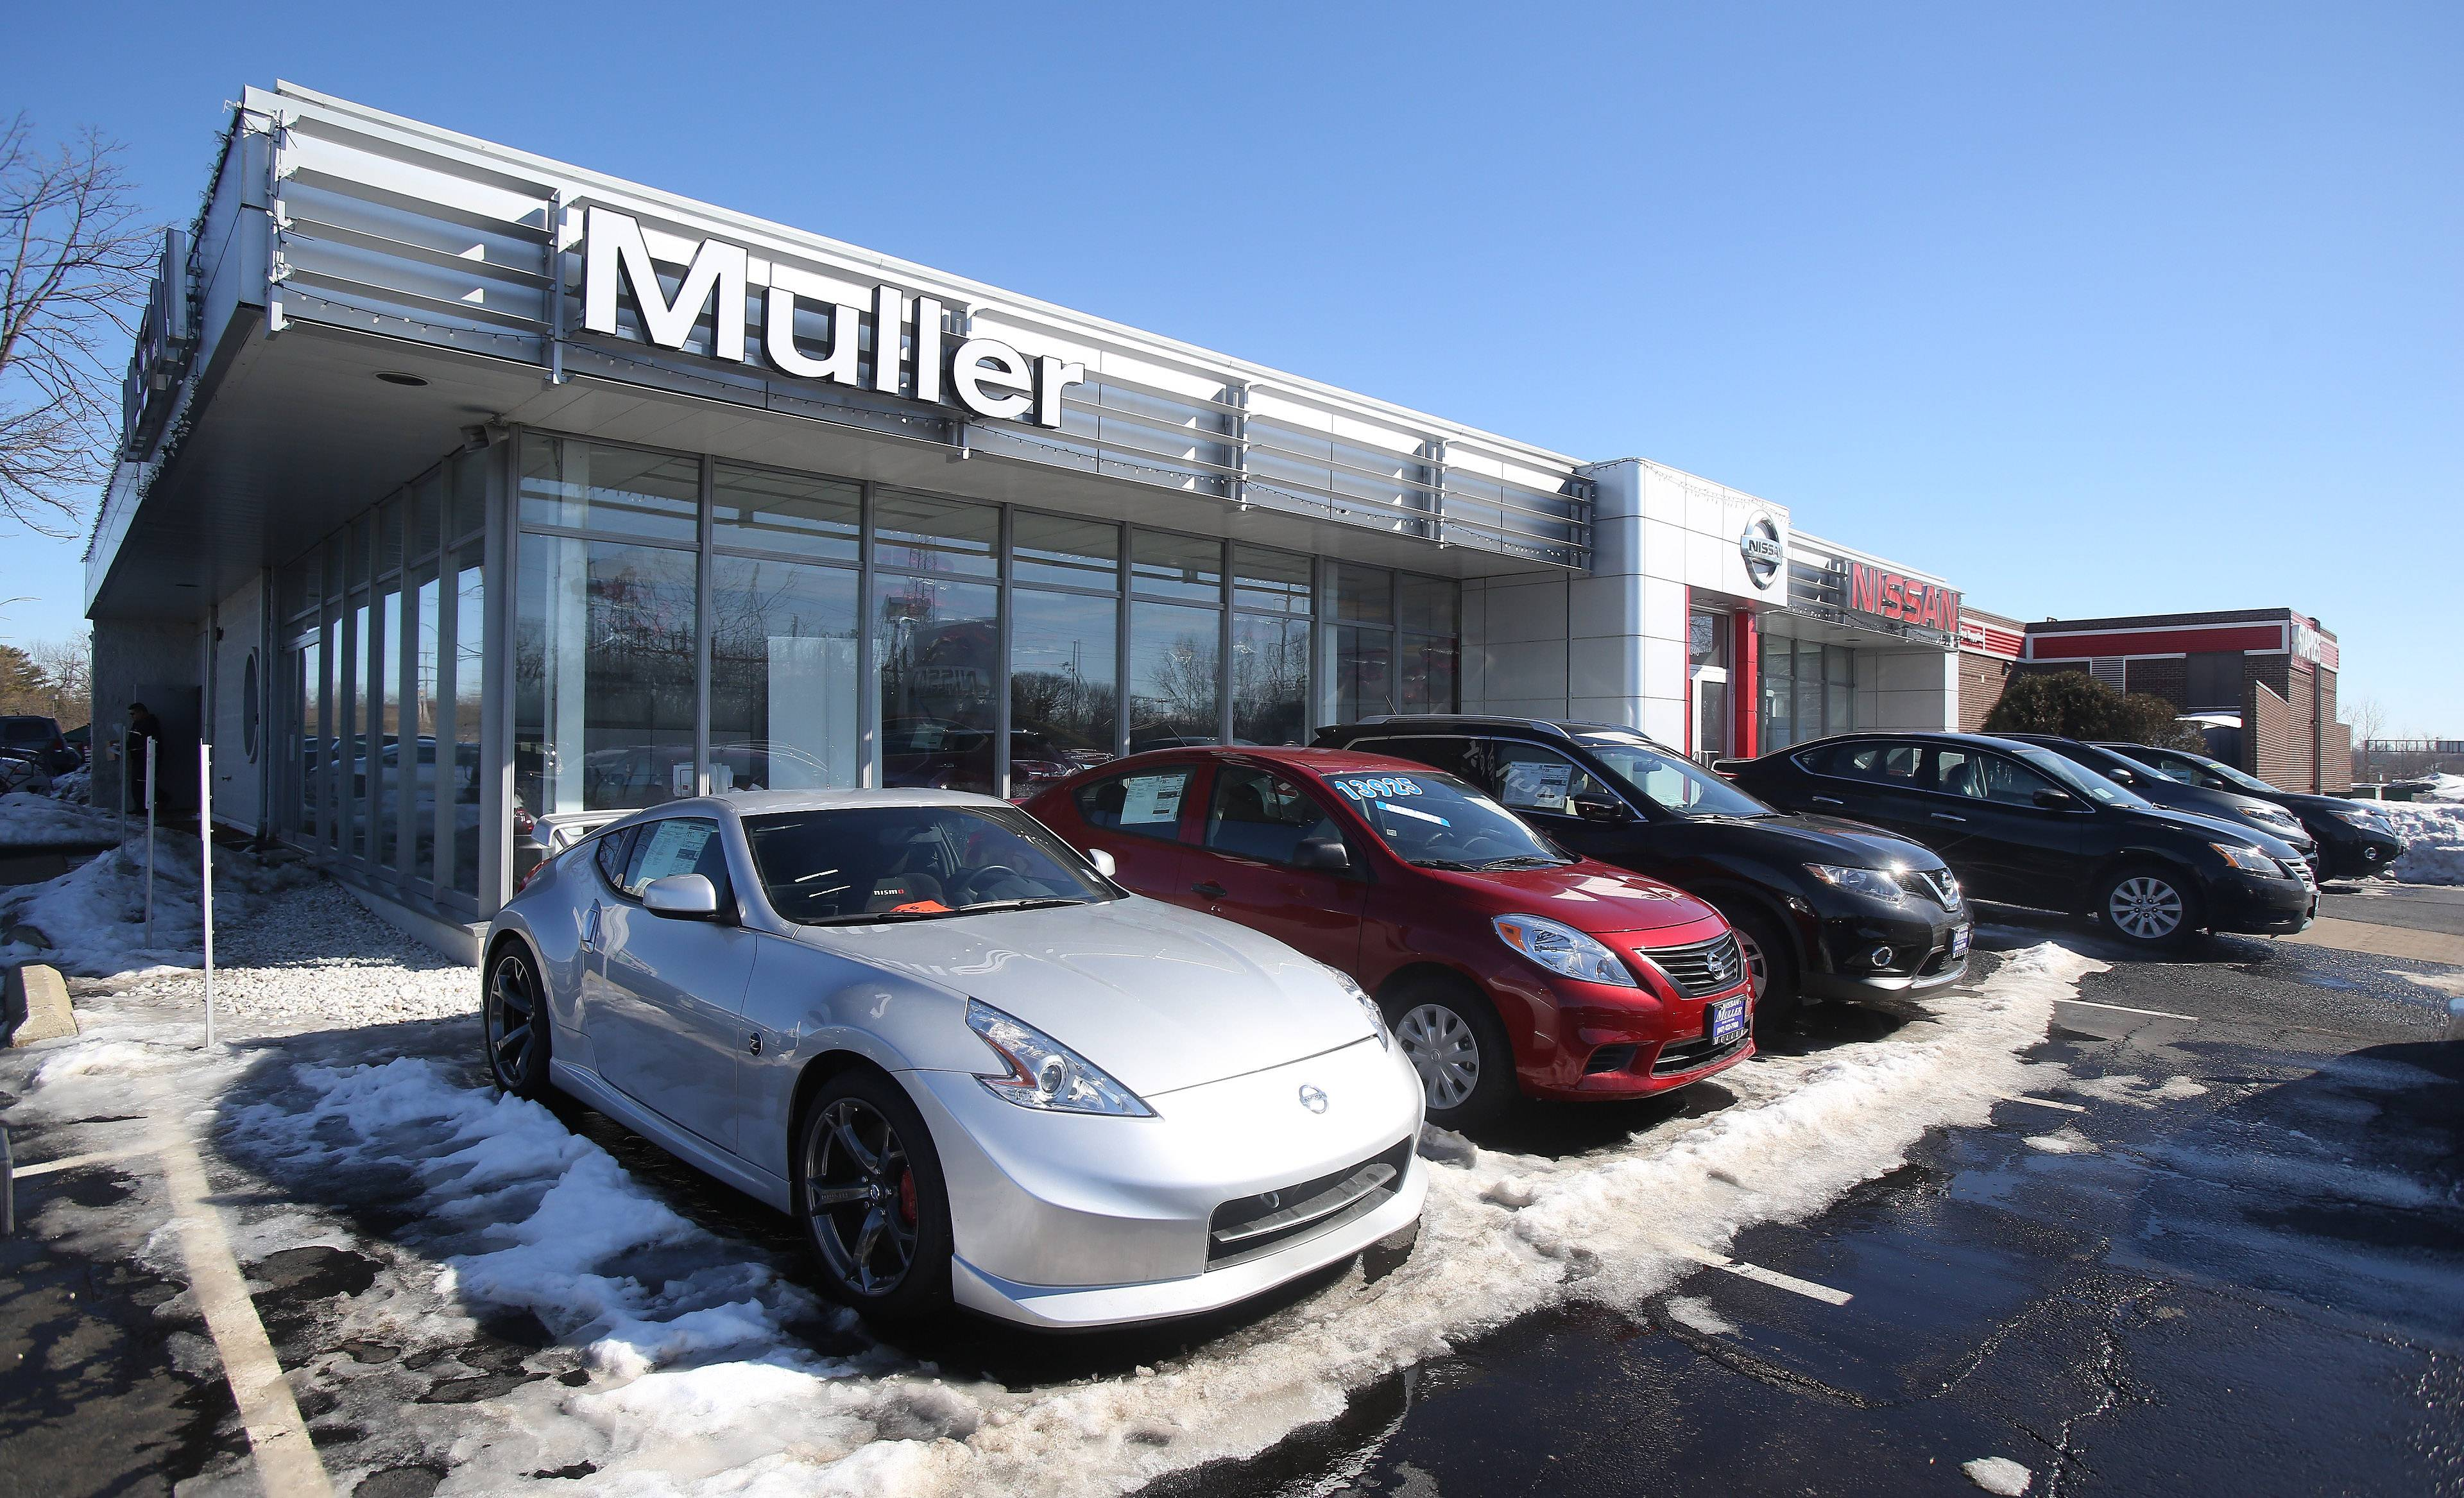 The Muller Auto Group encompasses a Nissan dealership in Highland Park.